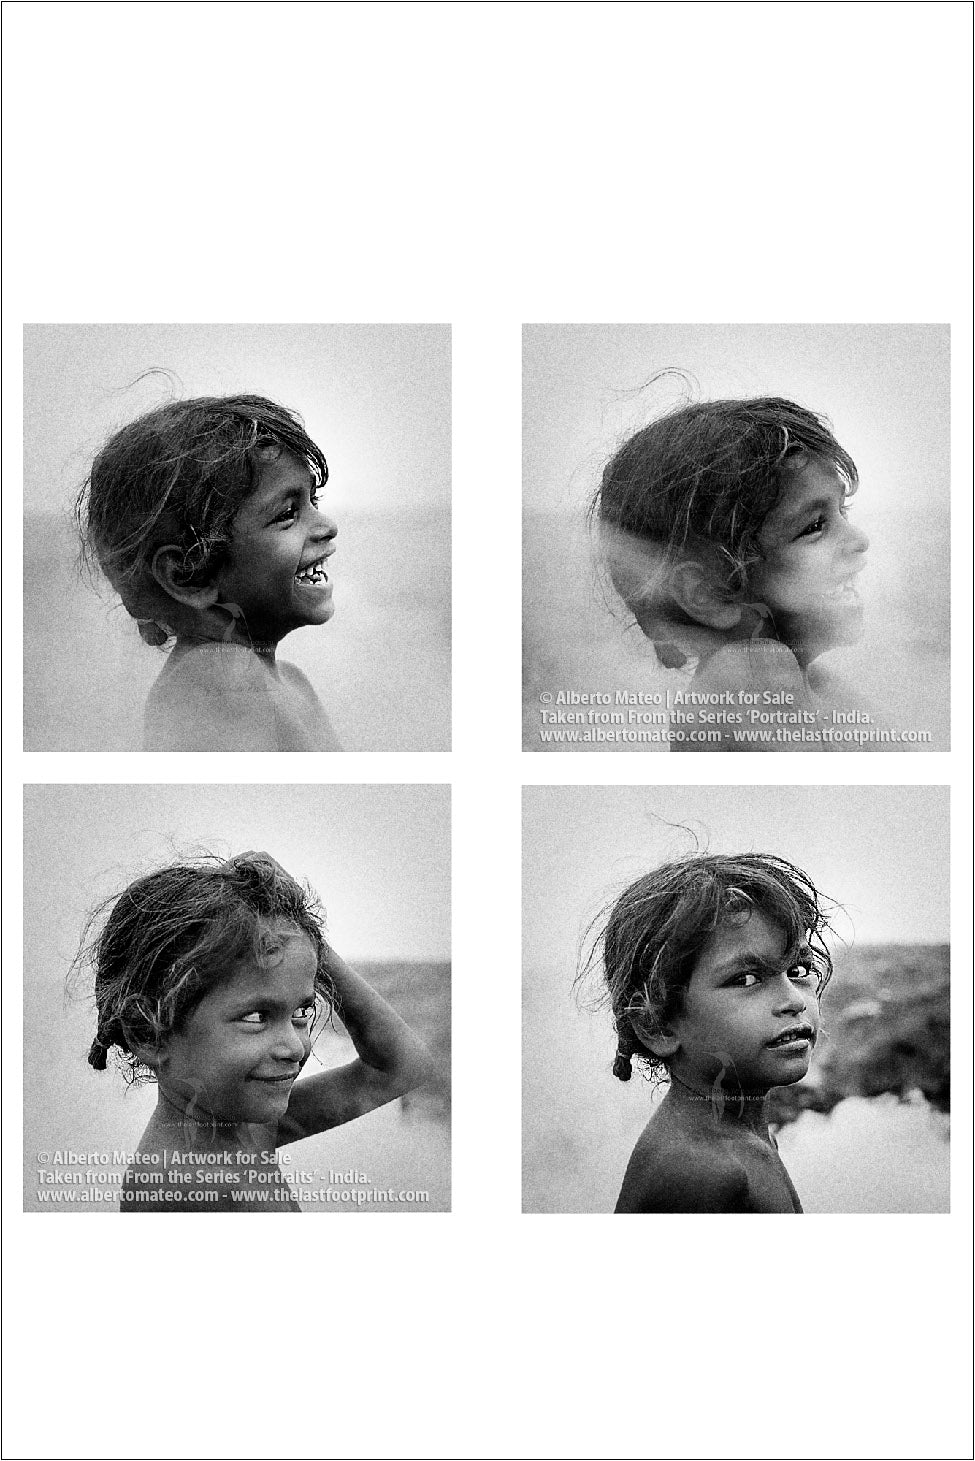 Series of four Portraits of small Girl, Sons of Coal Series.